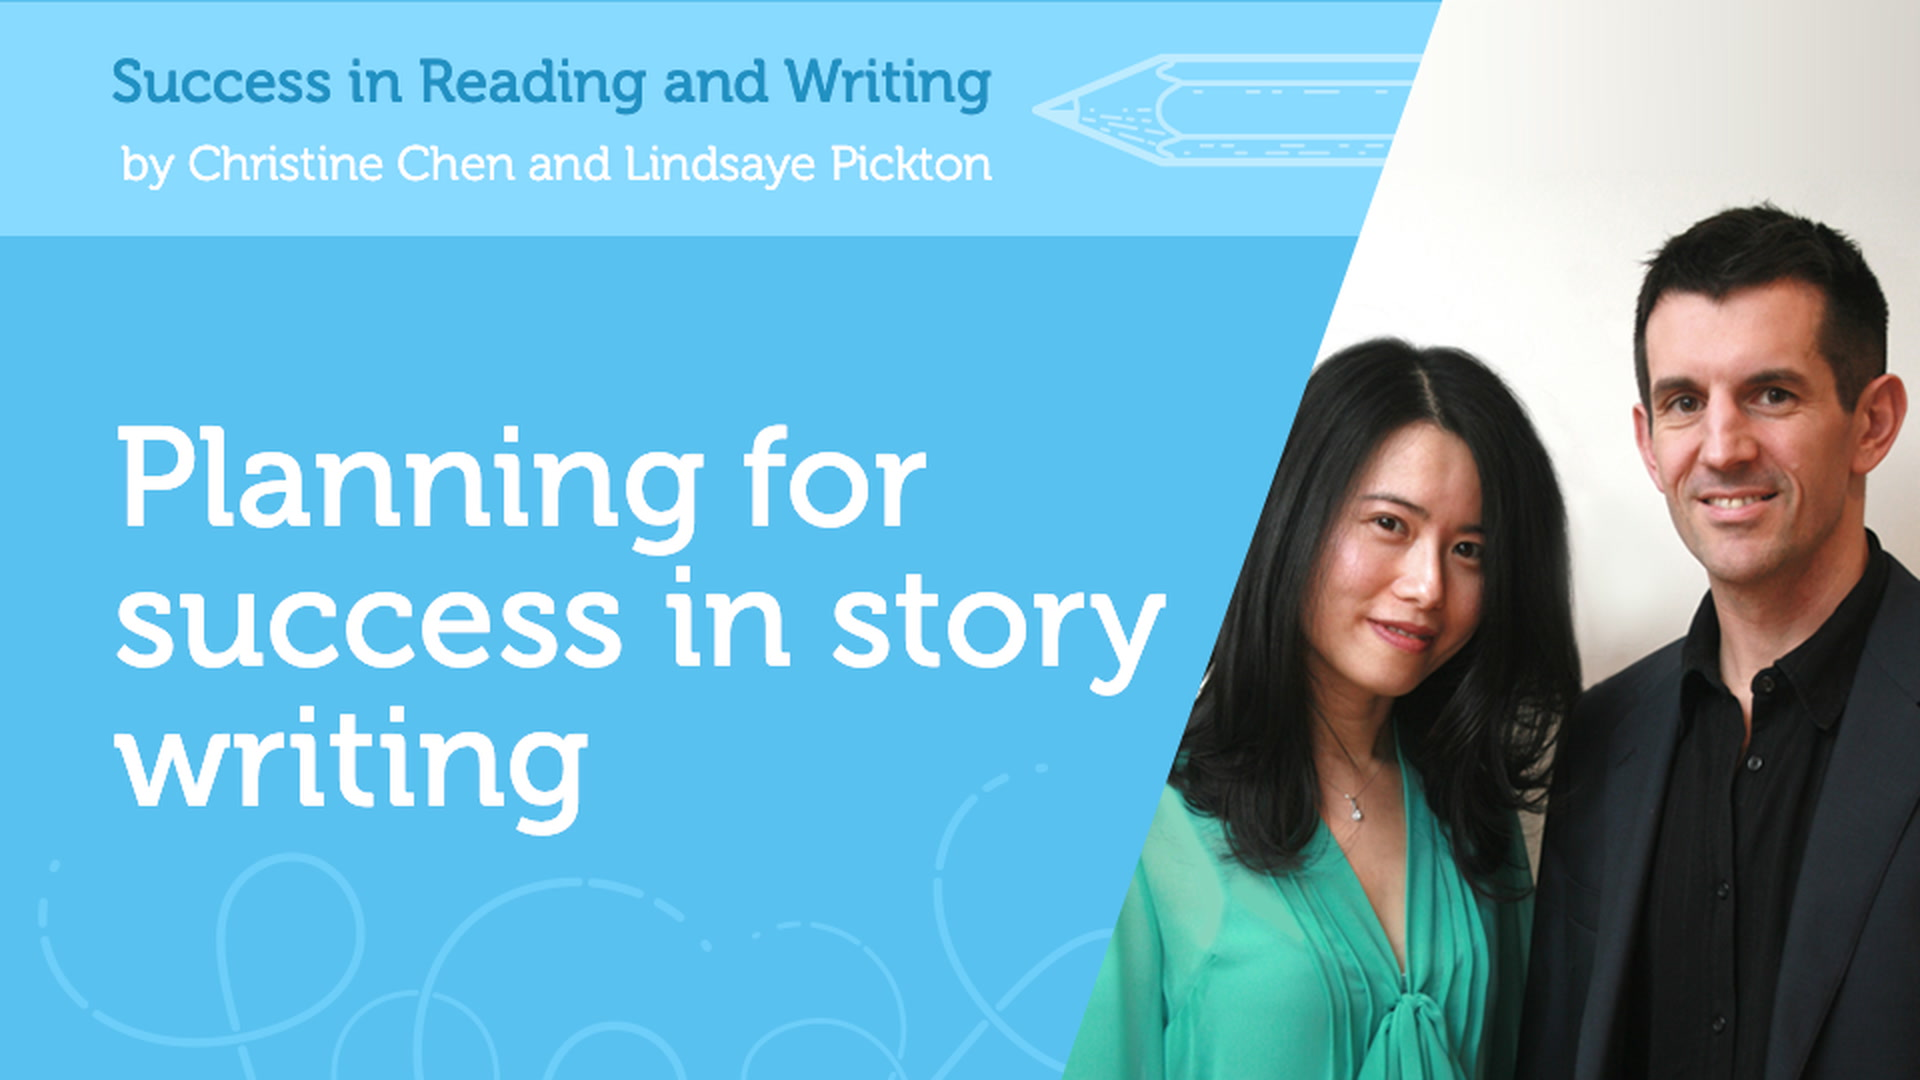 Planning for success in story writing